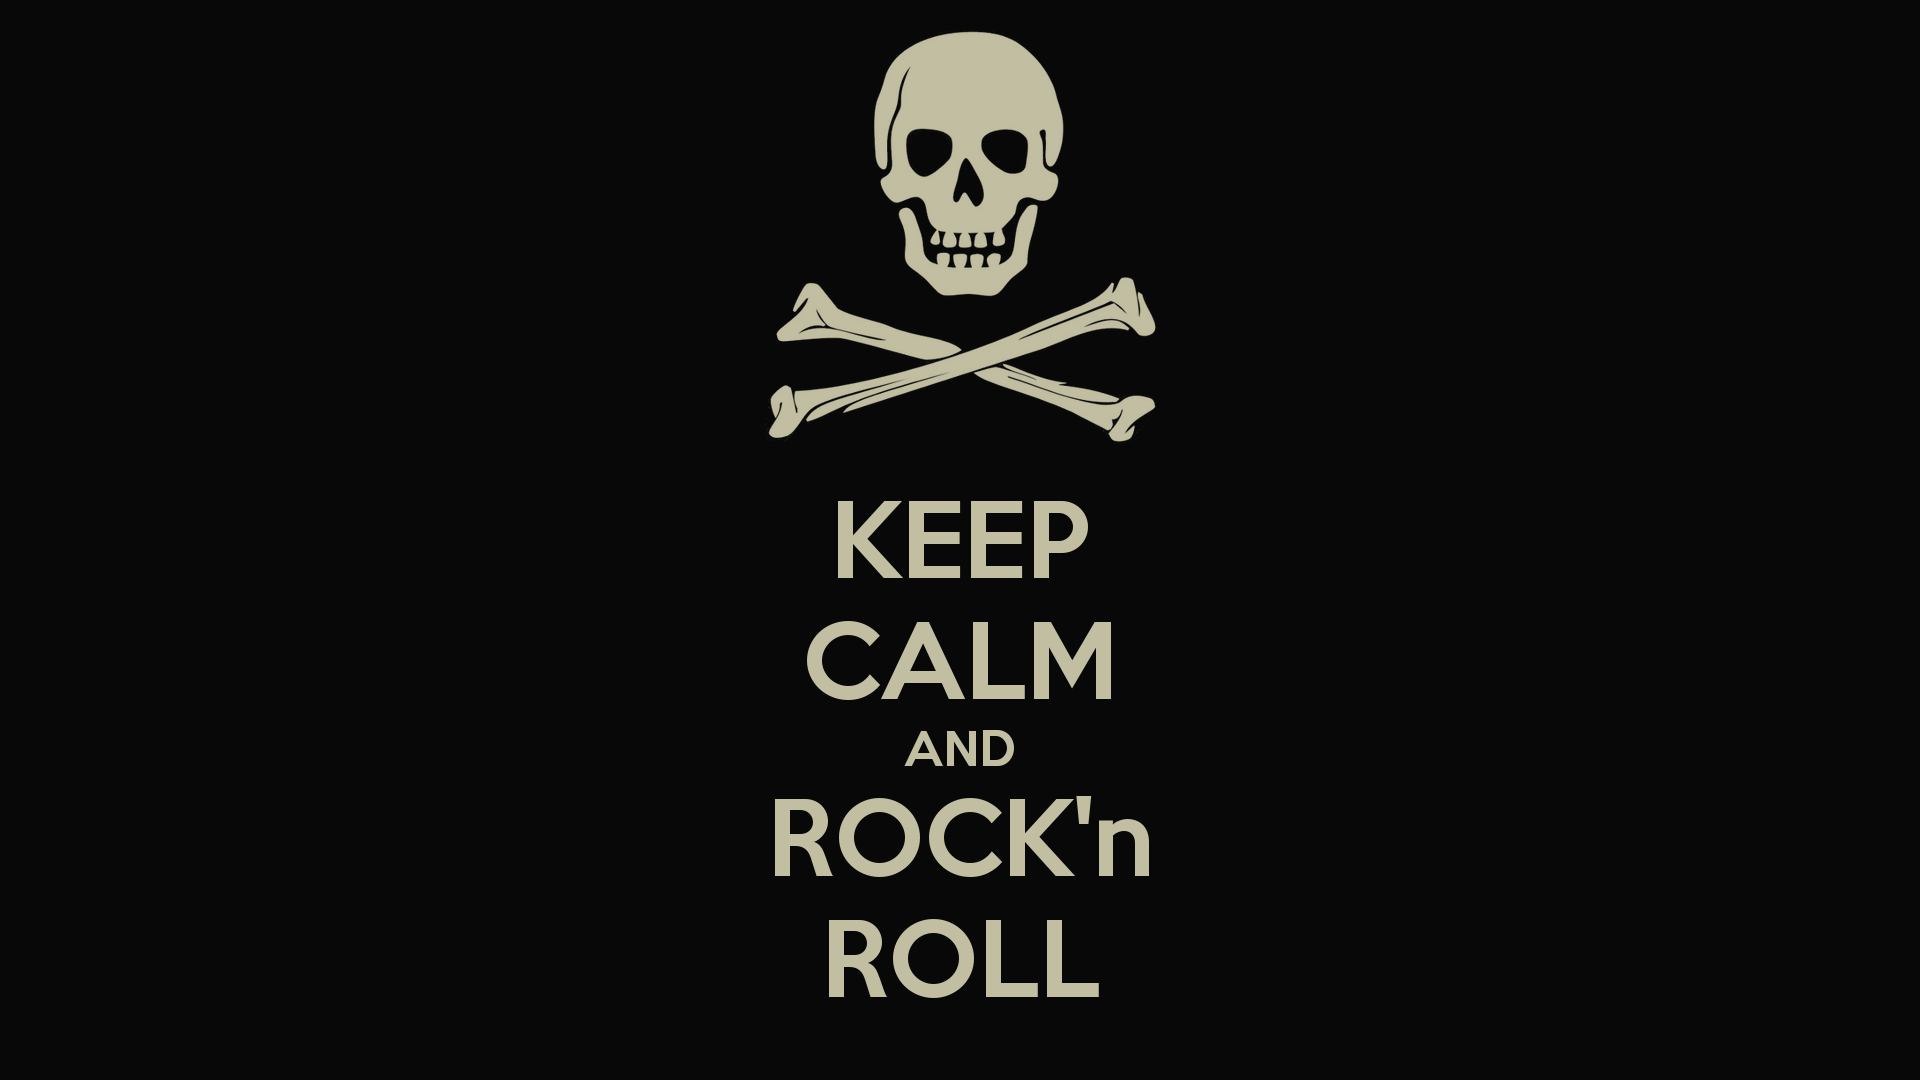 Rock And Roll Hd Wallpapers Fit Rock And Roll Rock And Roll Quotes Rock N Roll